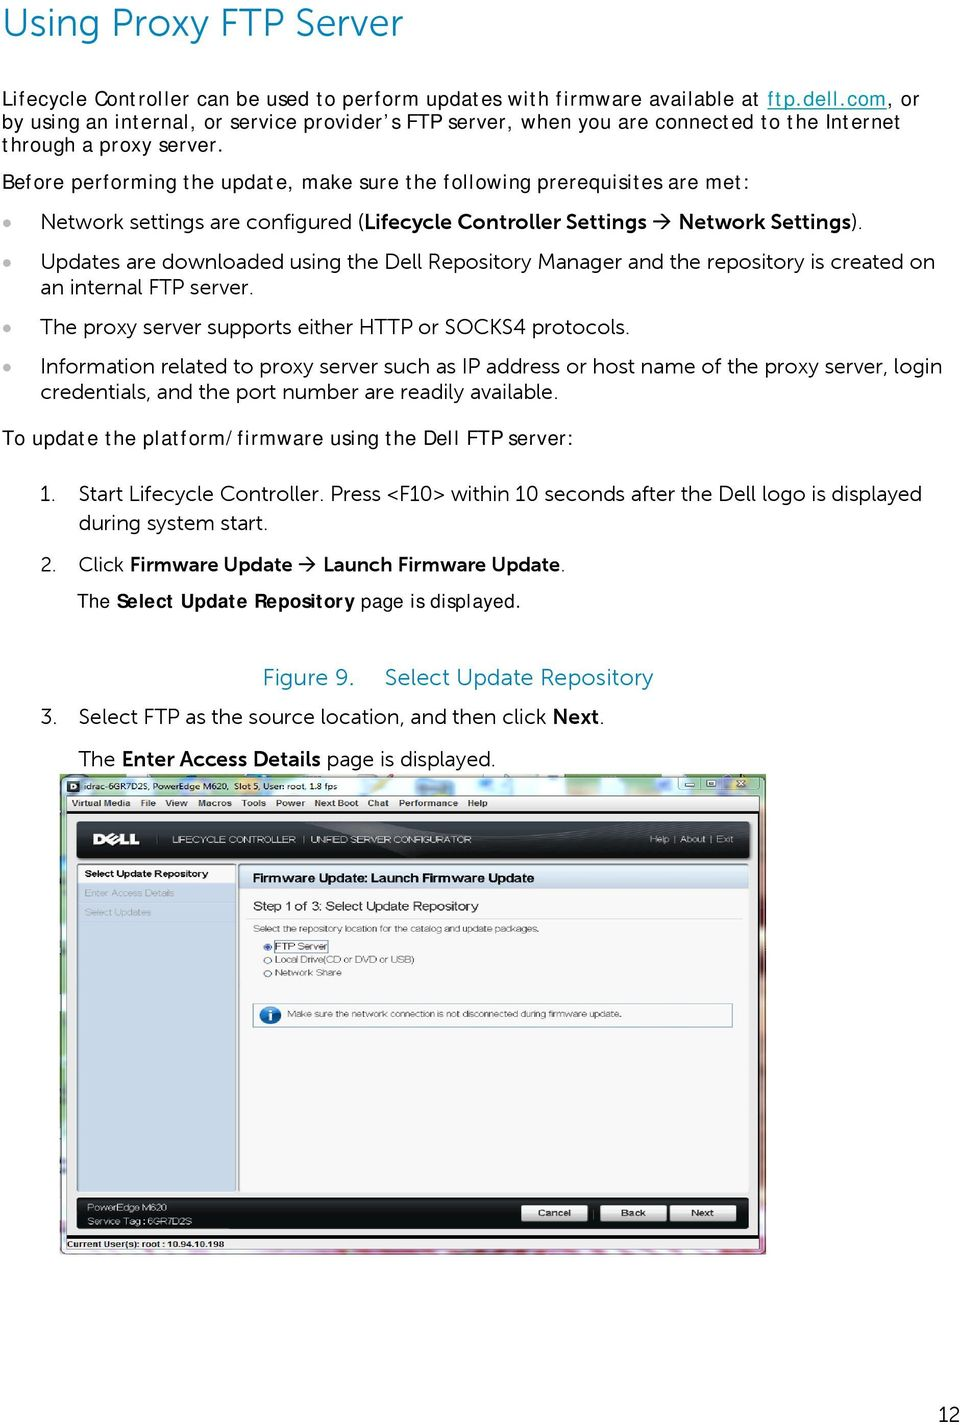 Dell Lifecycle Controller Firmware Update Ftp Username - gaurani